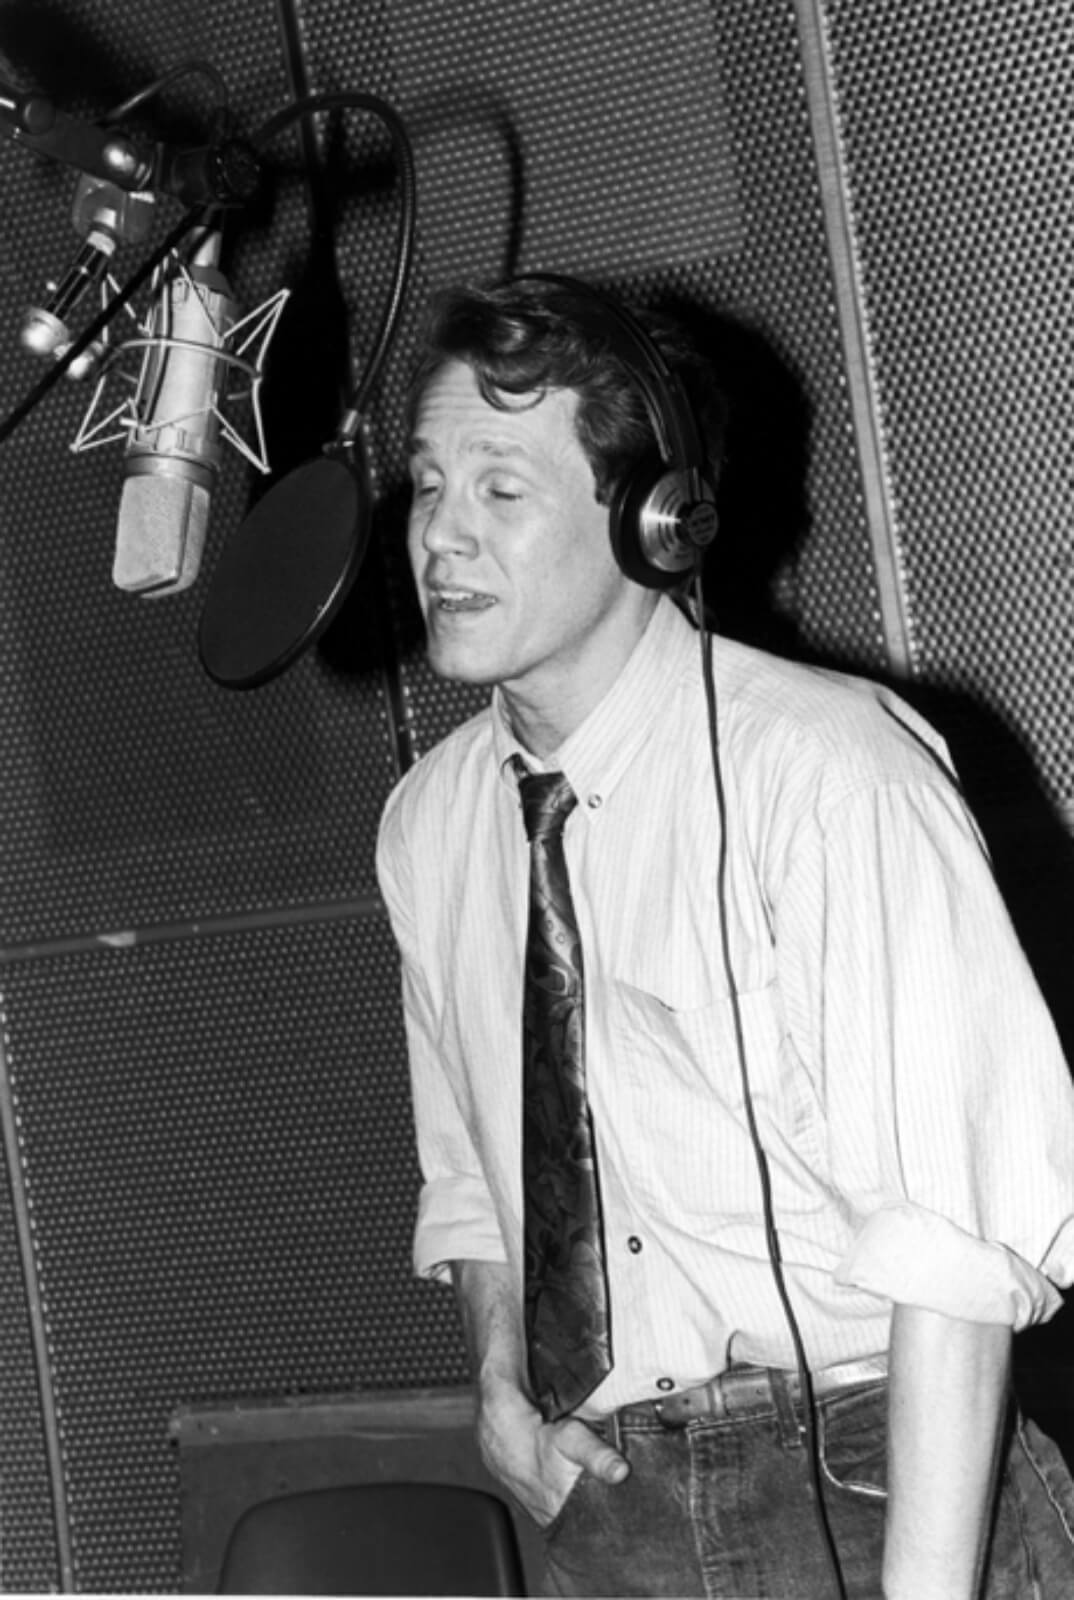 Black and white photo of Jimmy Walton recording the cast album to And the World Goes 'Round. He is standing in front of a microphone and wearing a tie.